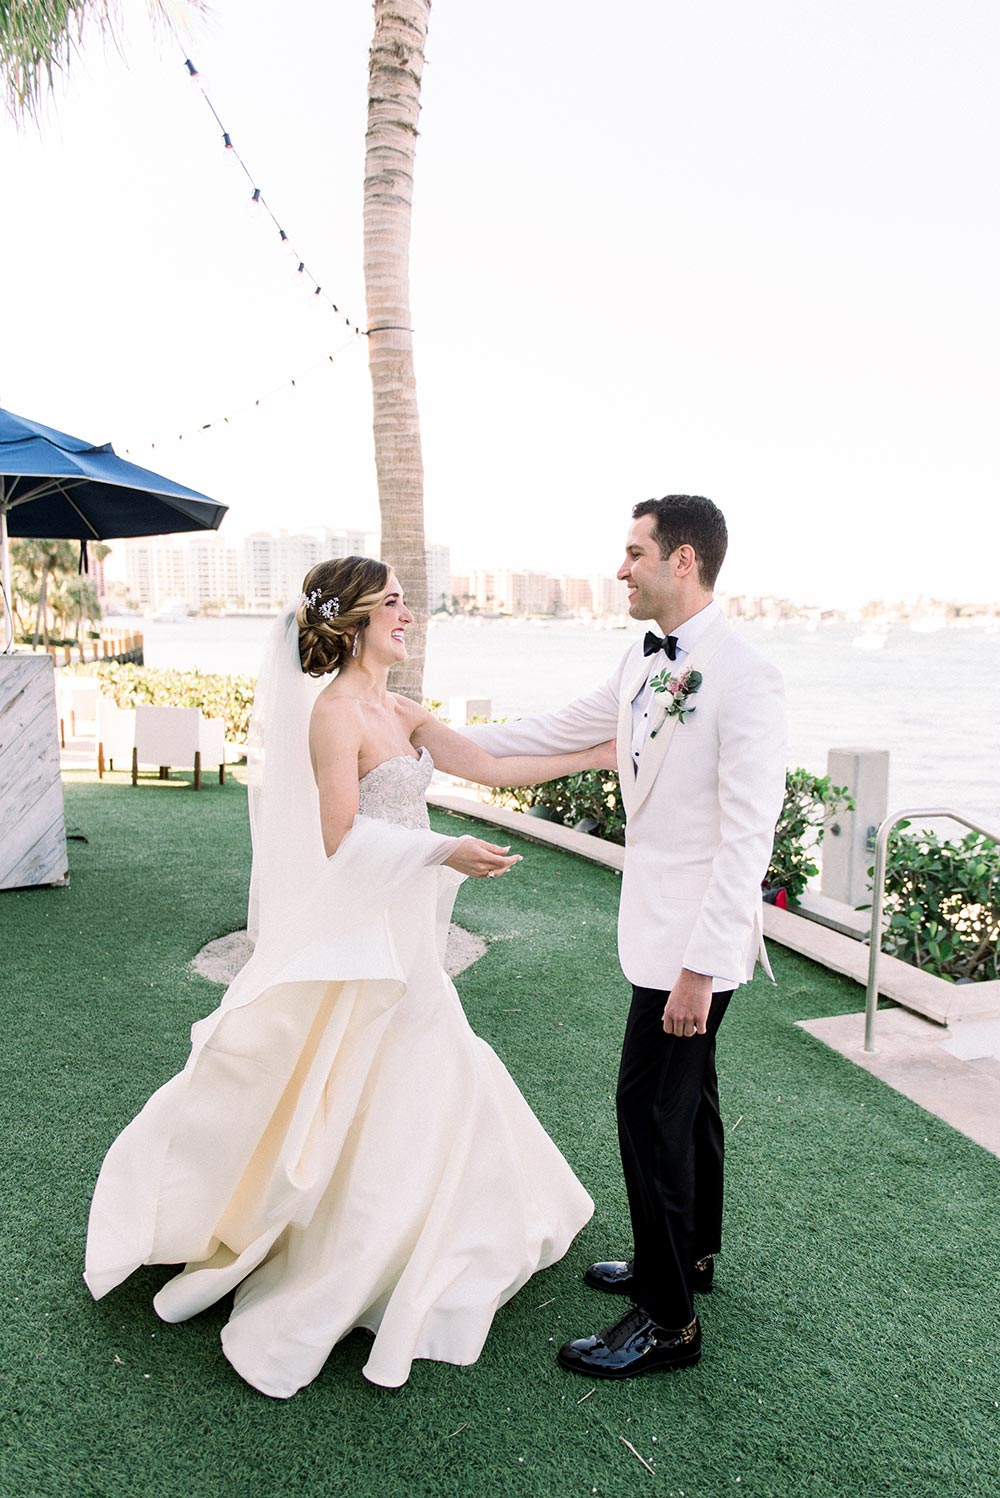 strapless embellished wedding dress and white groom tux first look